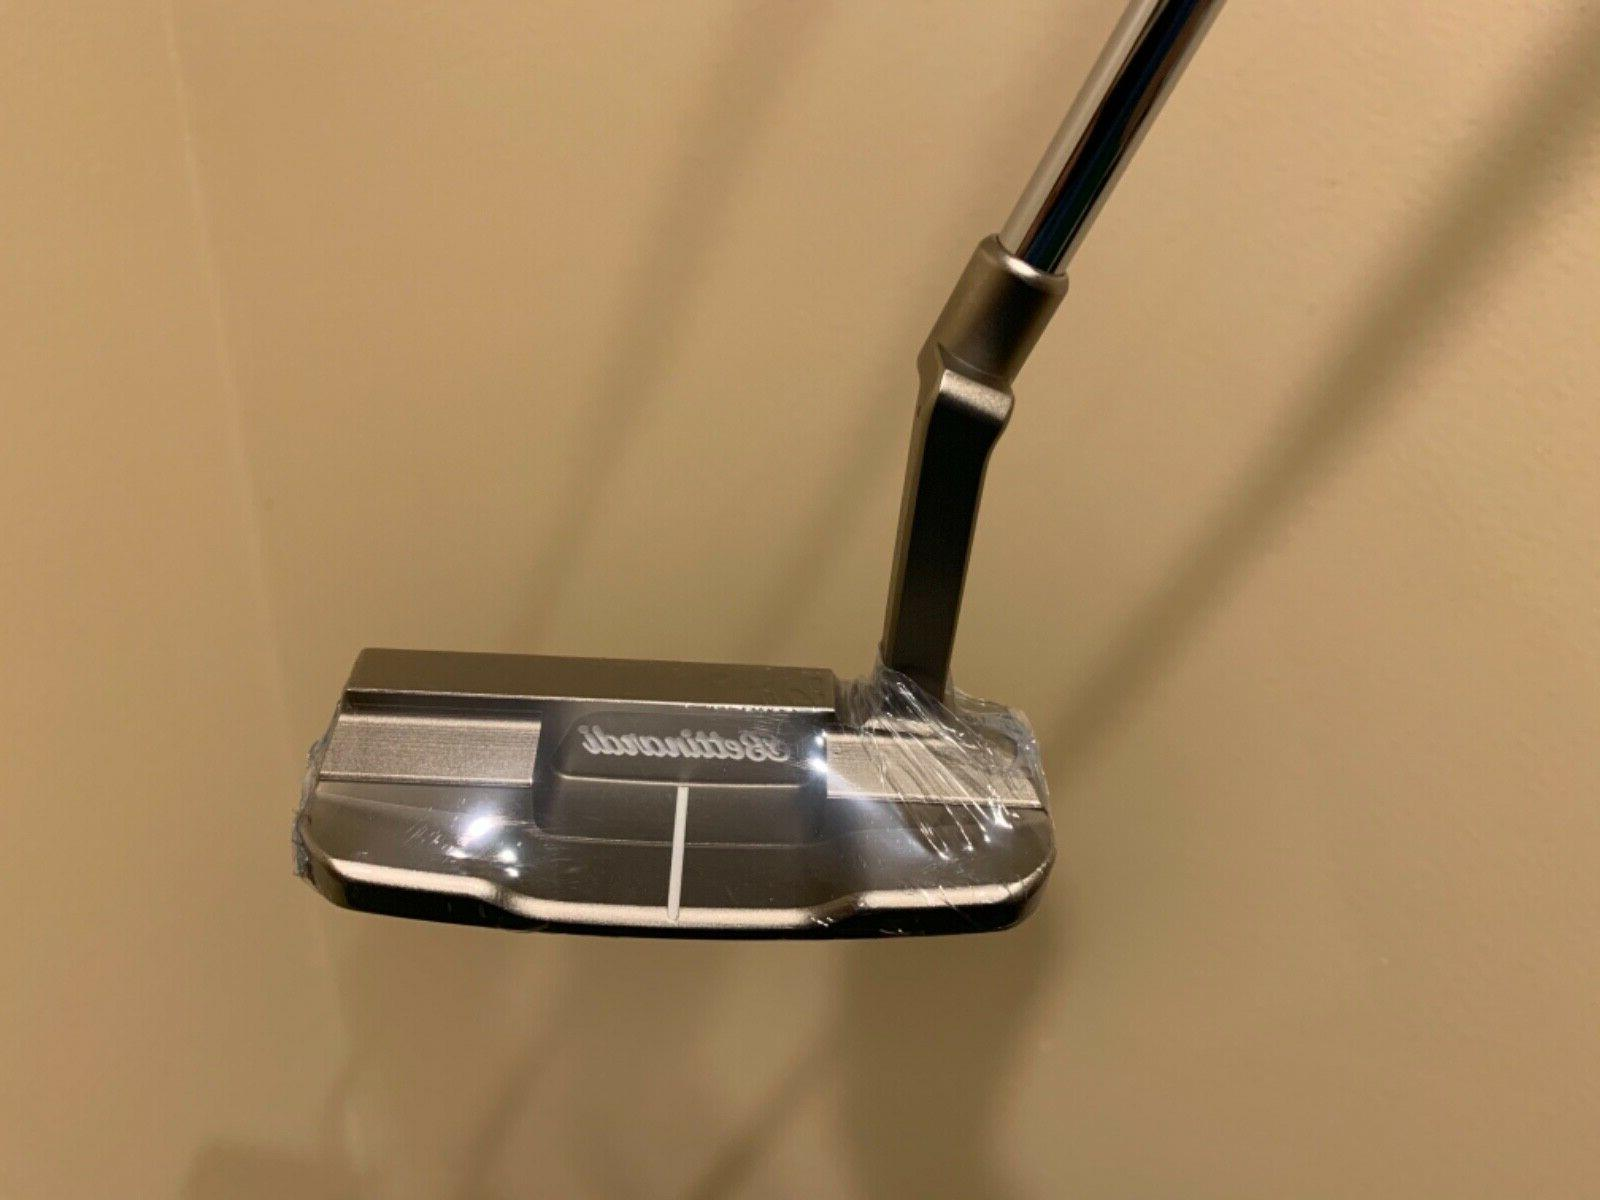 2019 queen bee model 5 putter 33